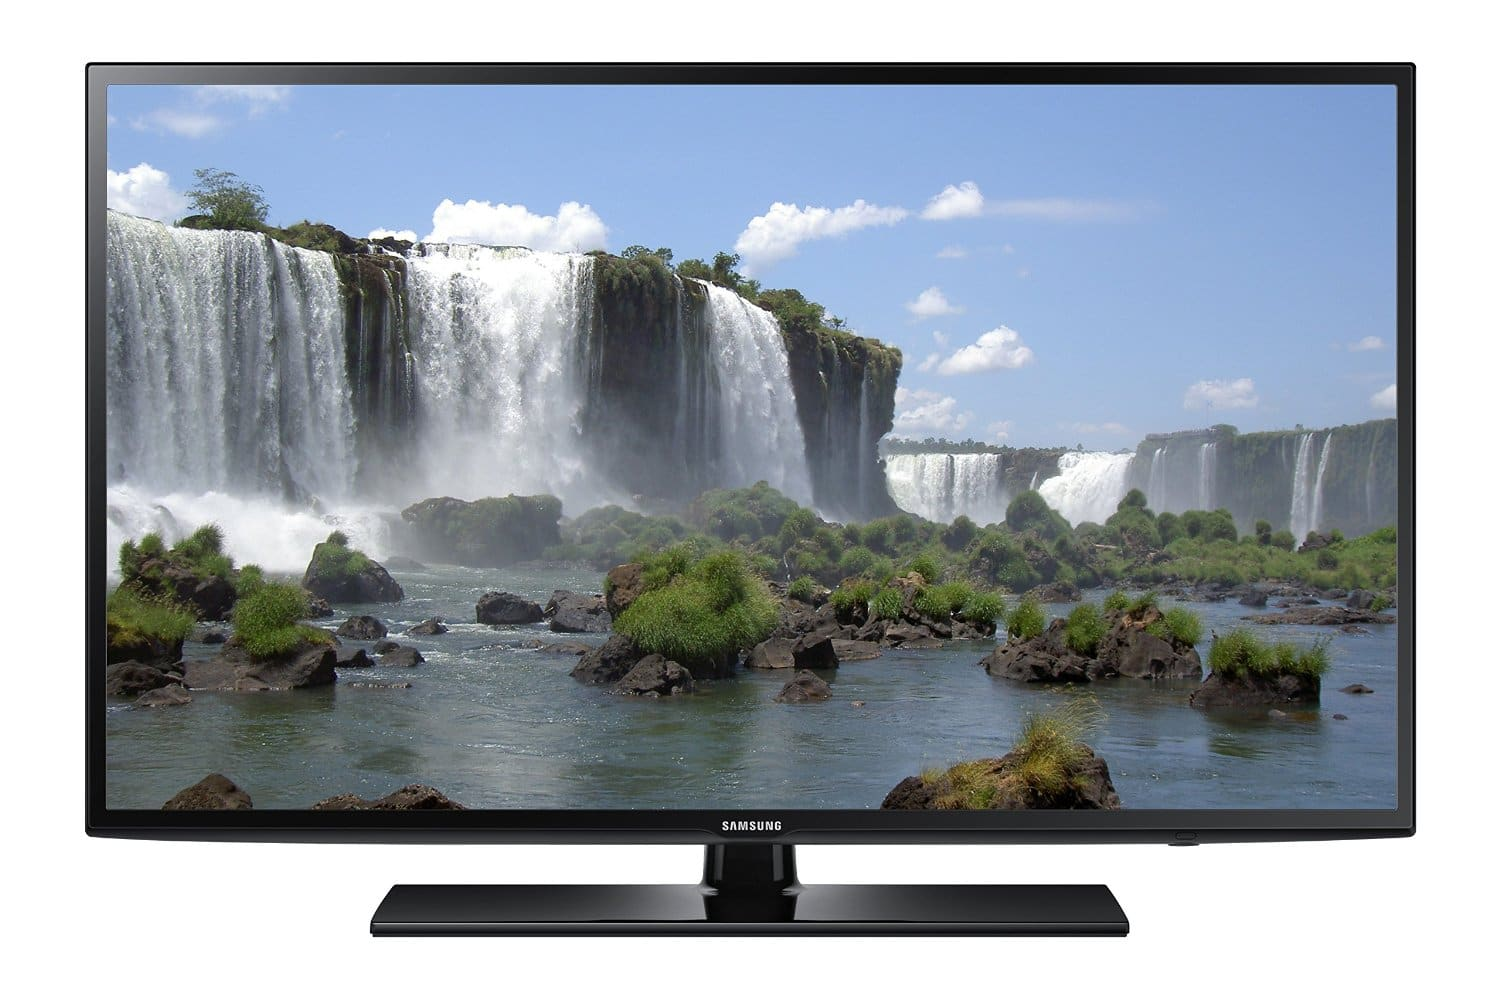 Samsung UN65J6200 65-Inch 1080p Smart LED TV Used $521.13 Amazon Warehousedeals